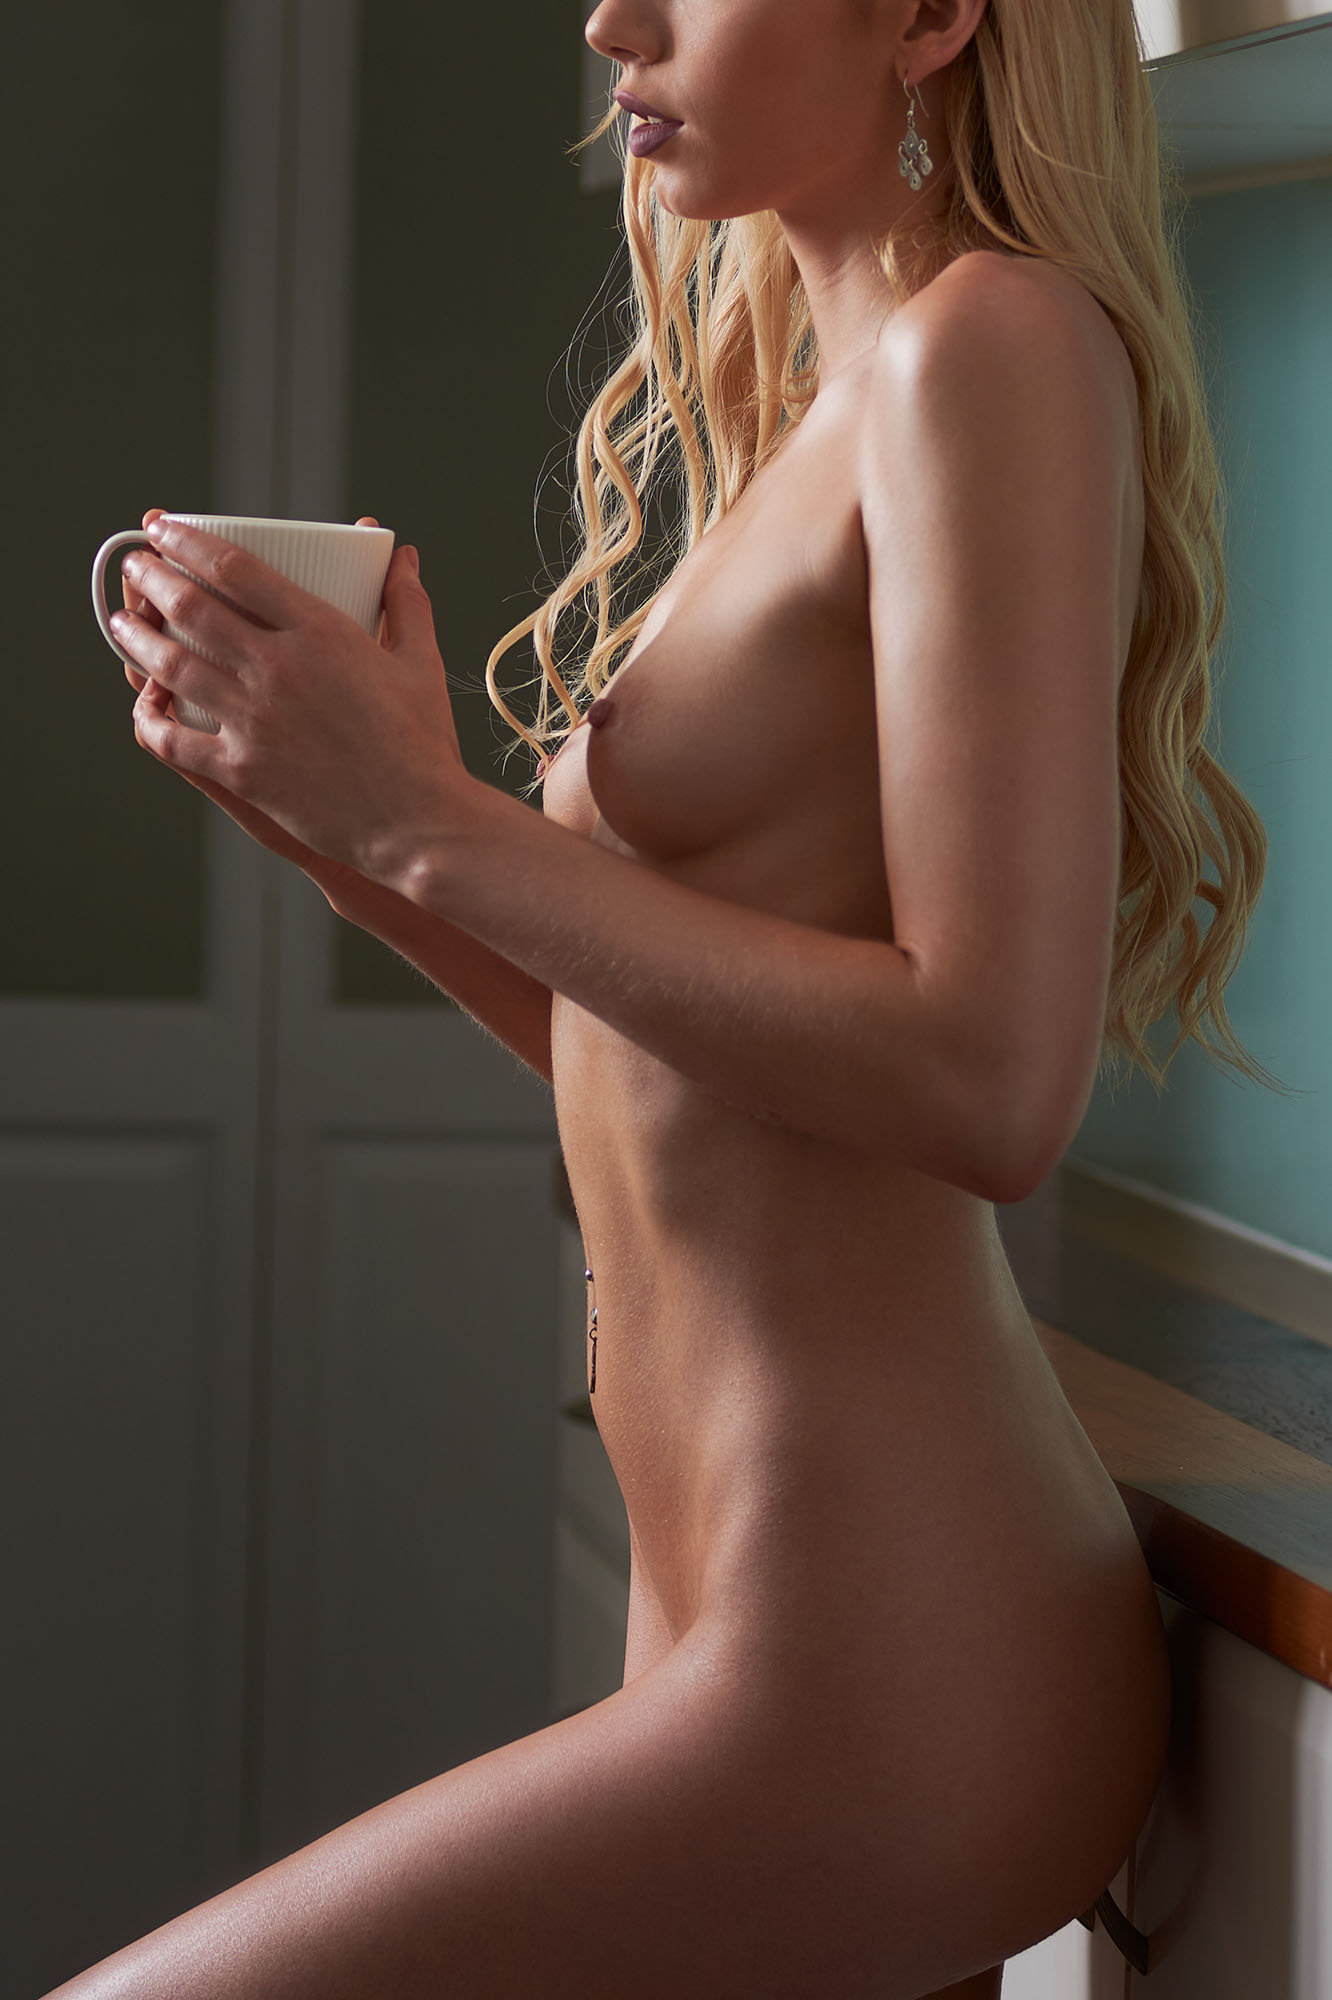 body-art-nude-coffee-kitchen